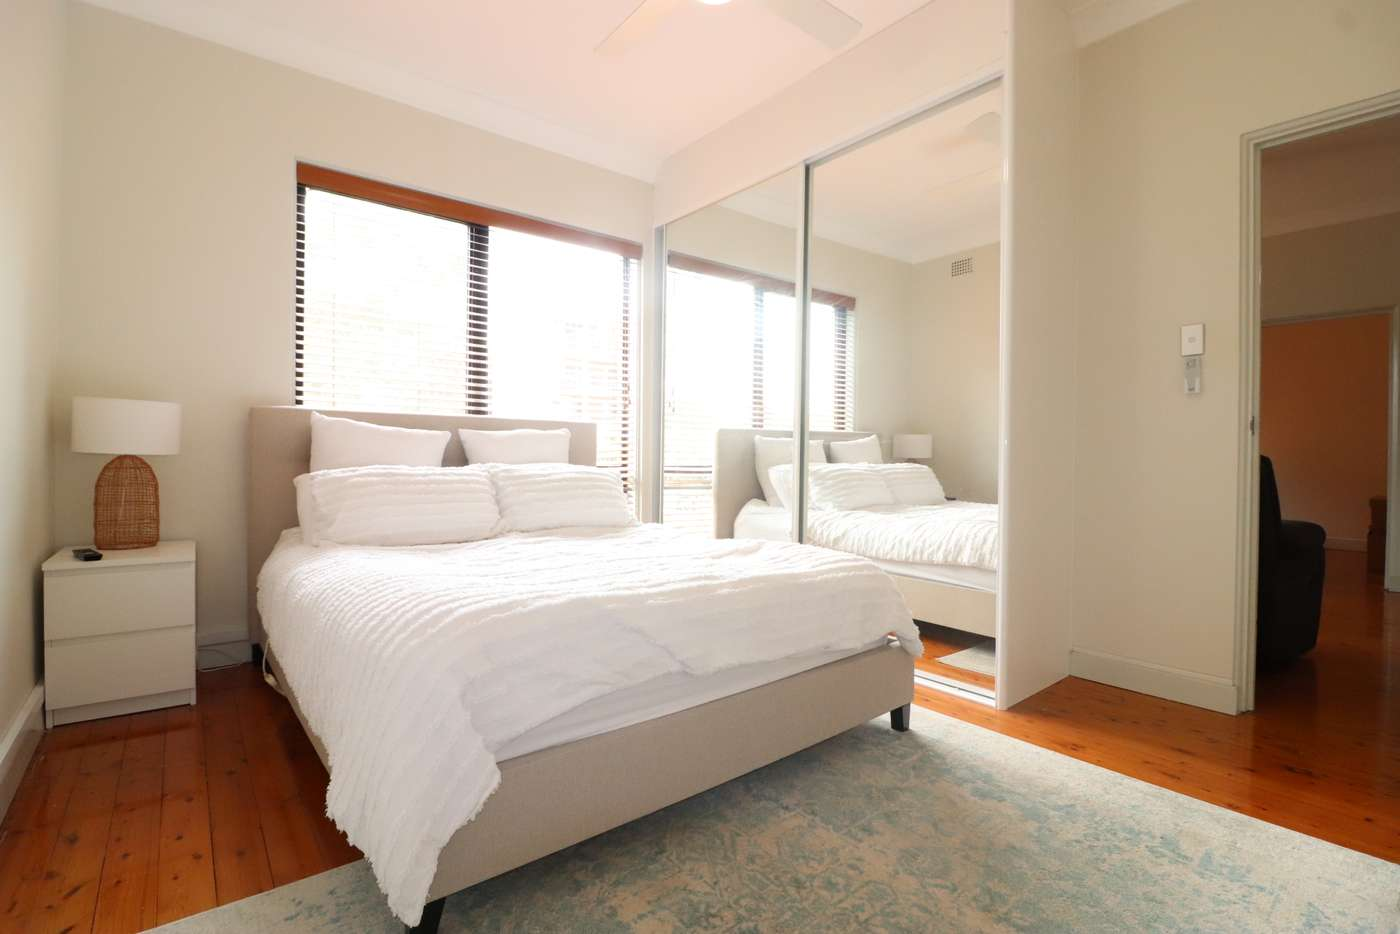 Main view of Homely apartment listing, 1/8 Gosport Street, Cronulla NSW 2230